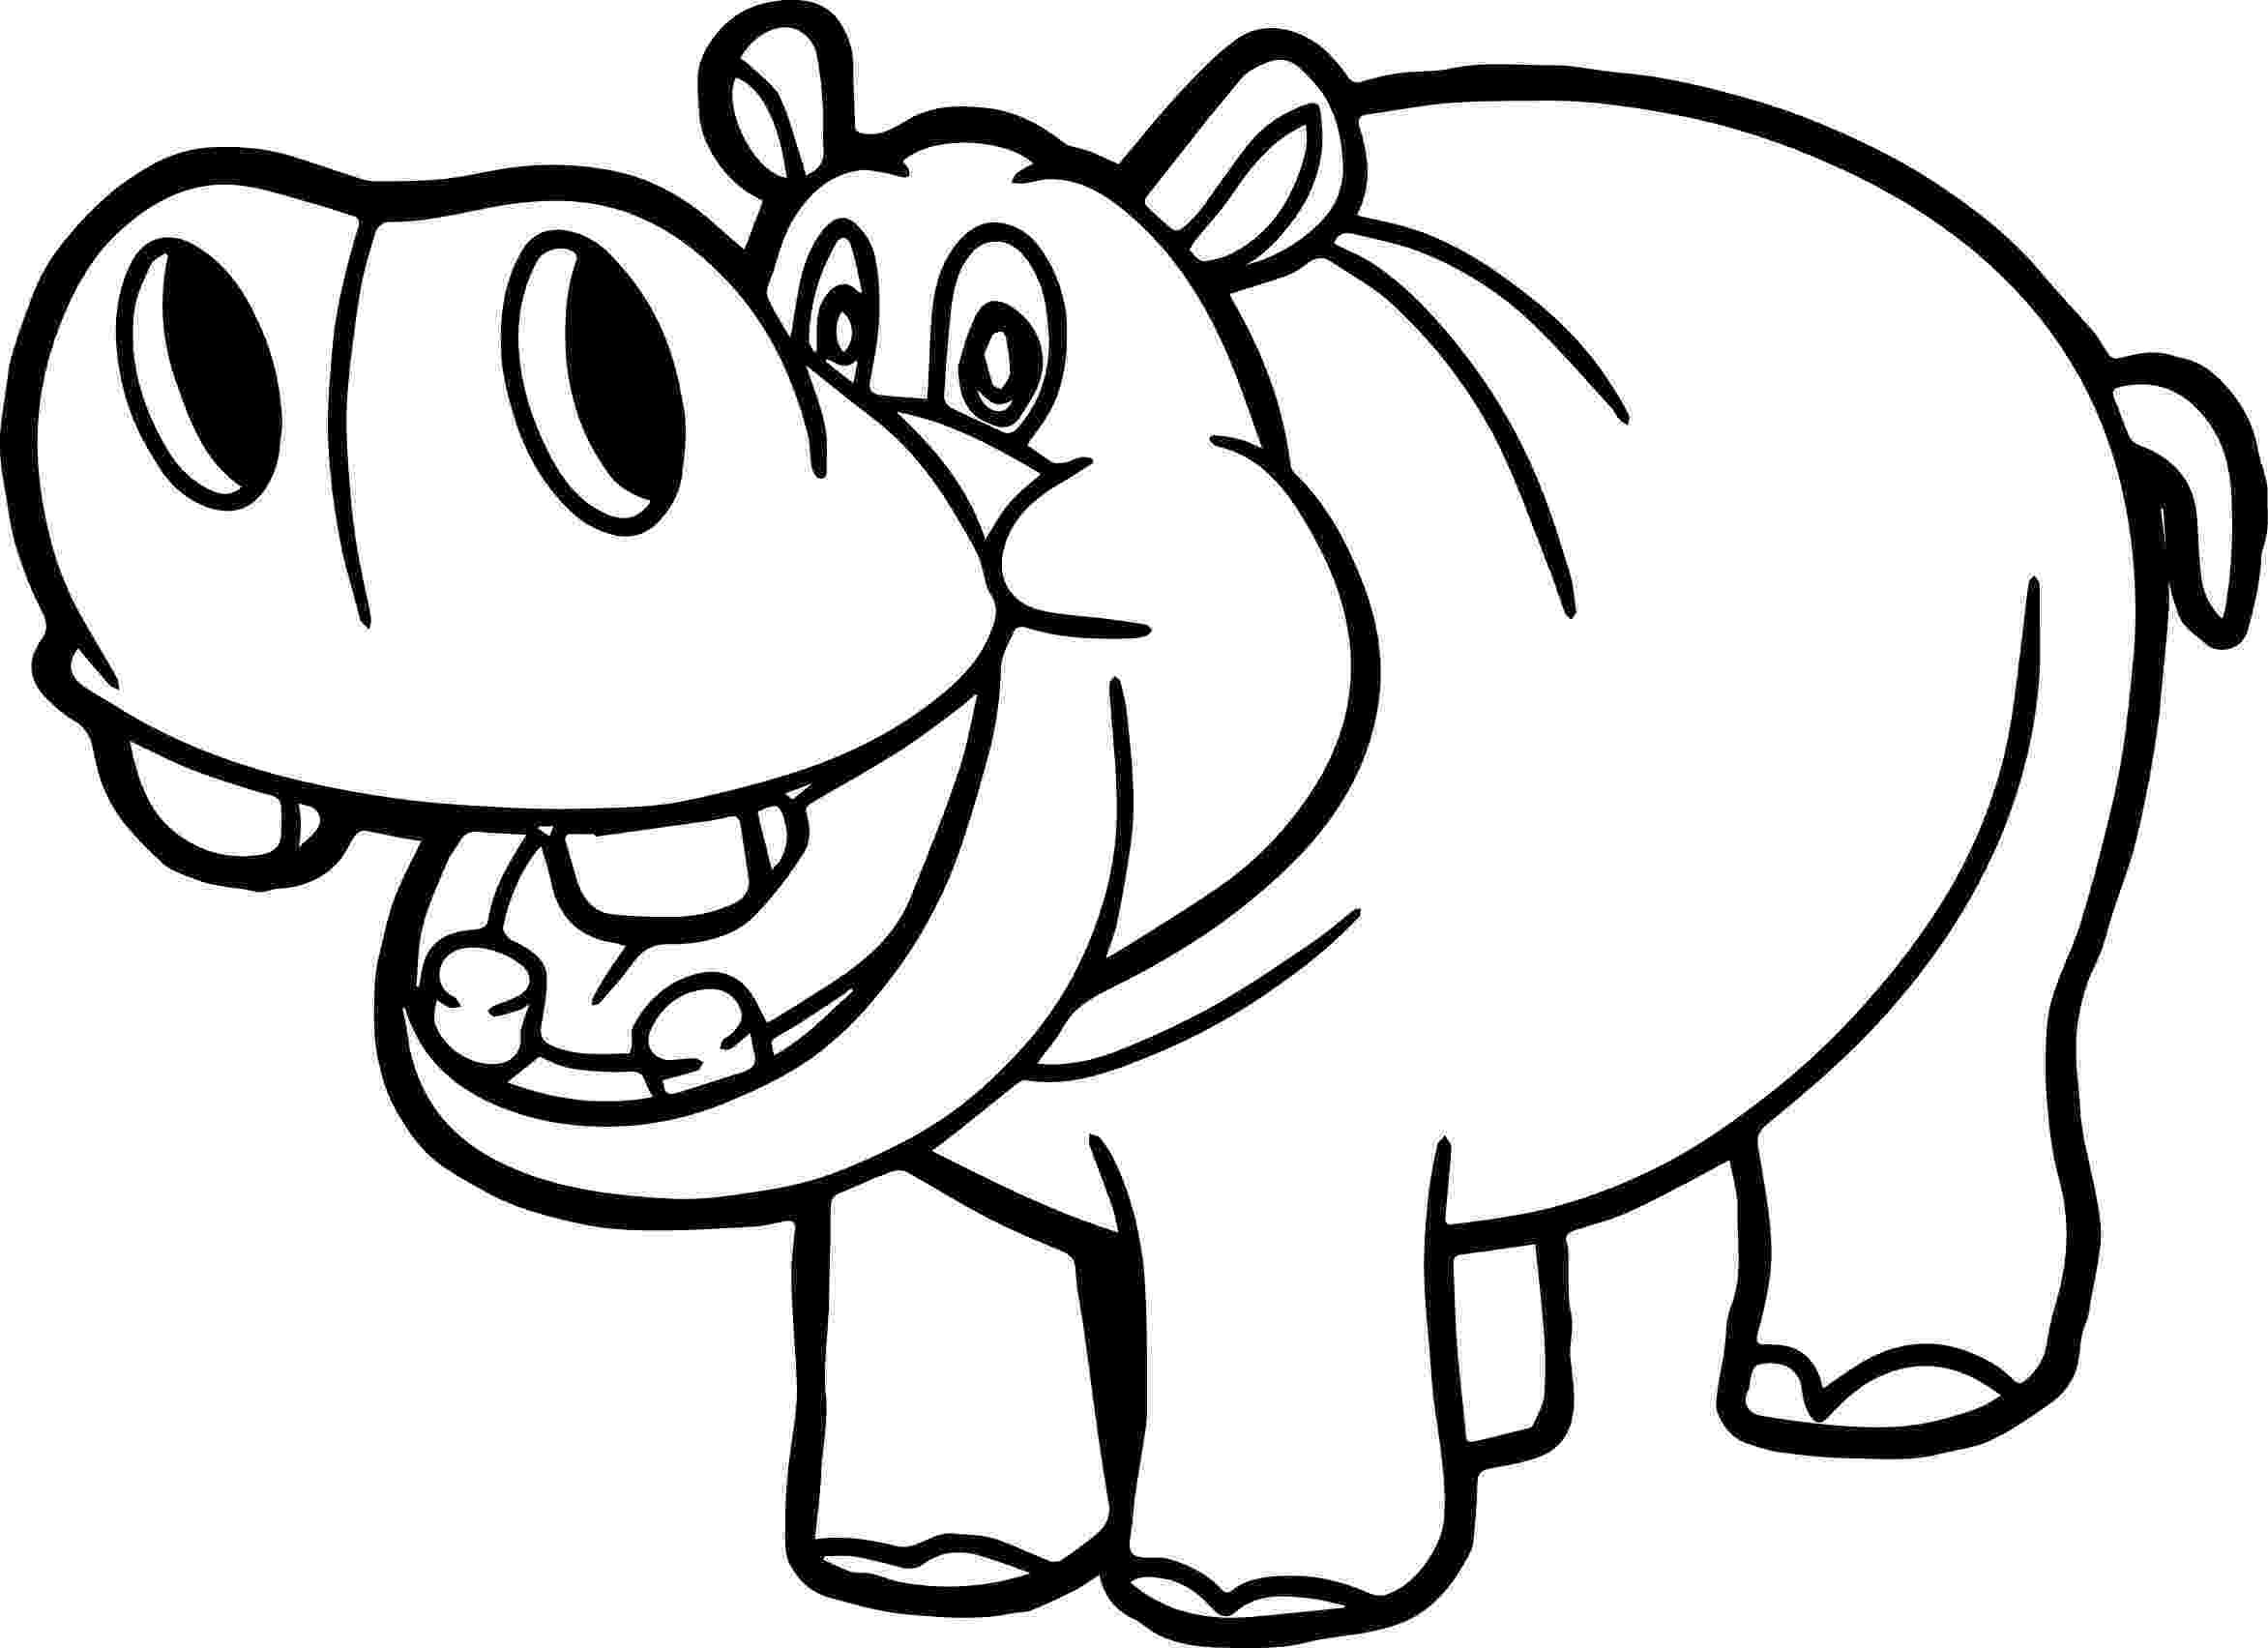 hippopotamus coloring page coloring page hippo free printable downloads from choretell page hippopotamus coloring